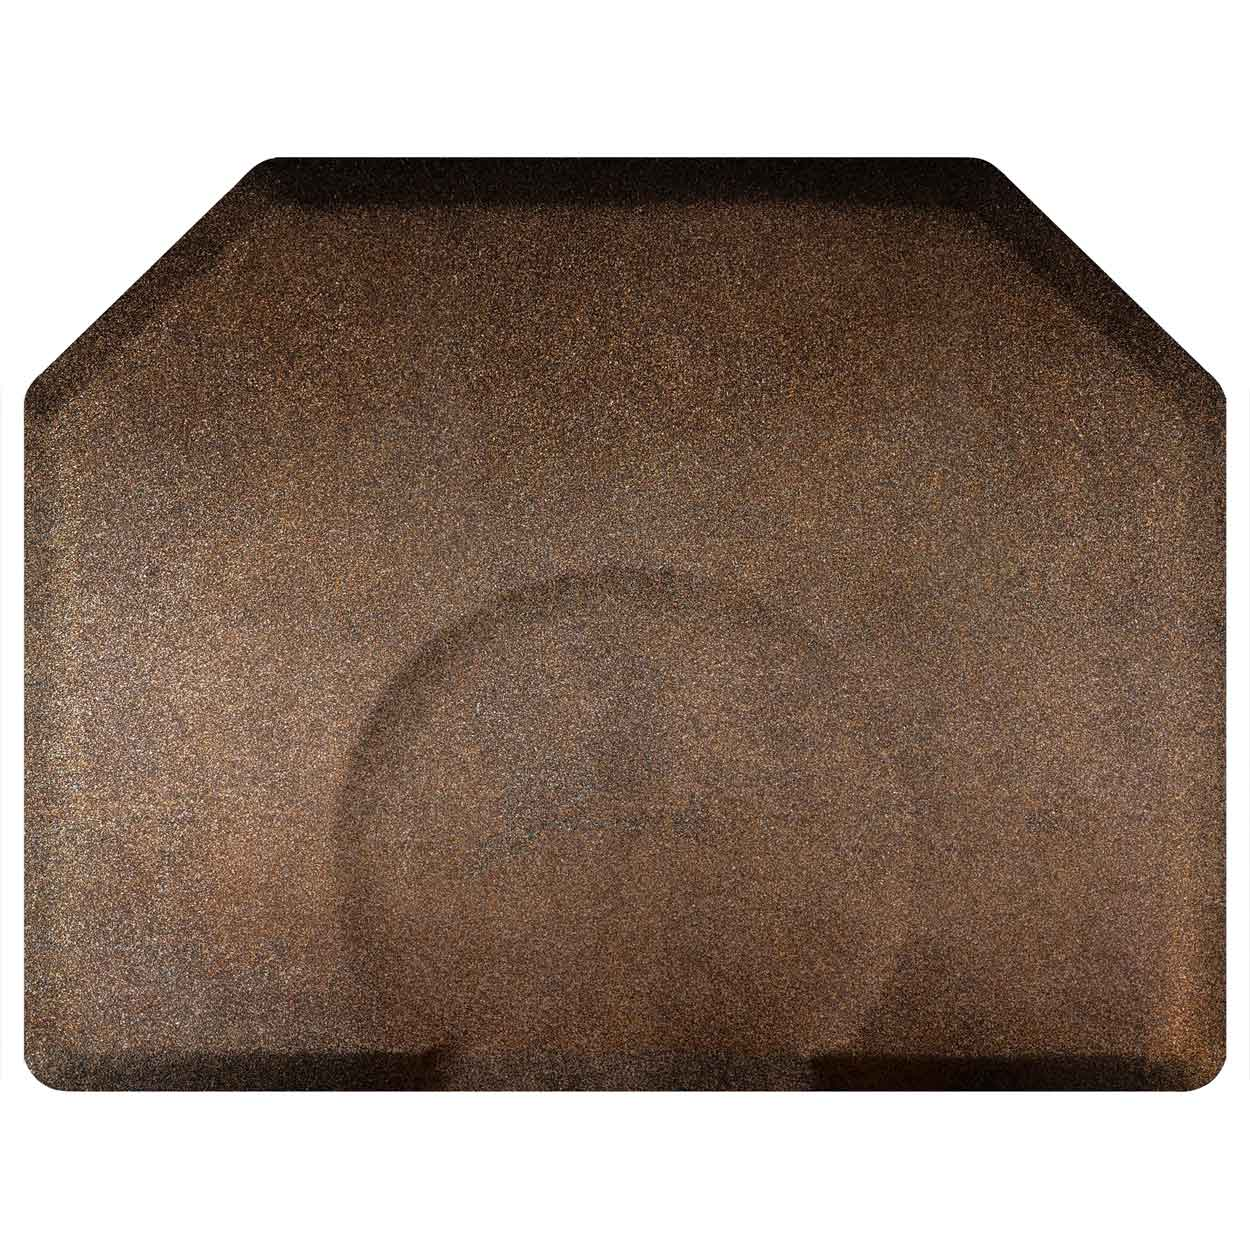 4x5 Granite Hex Anti-Fatigue Salon Mat alternative product image 2